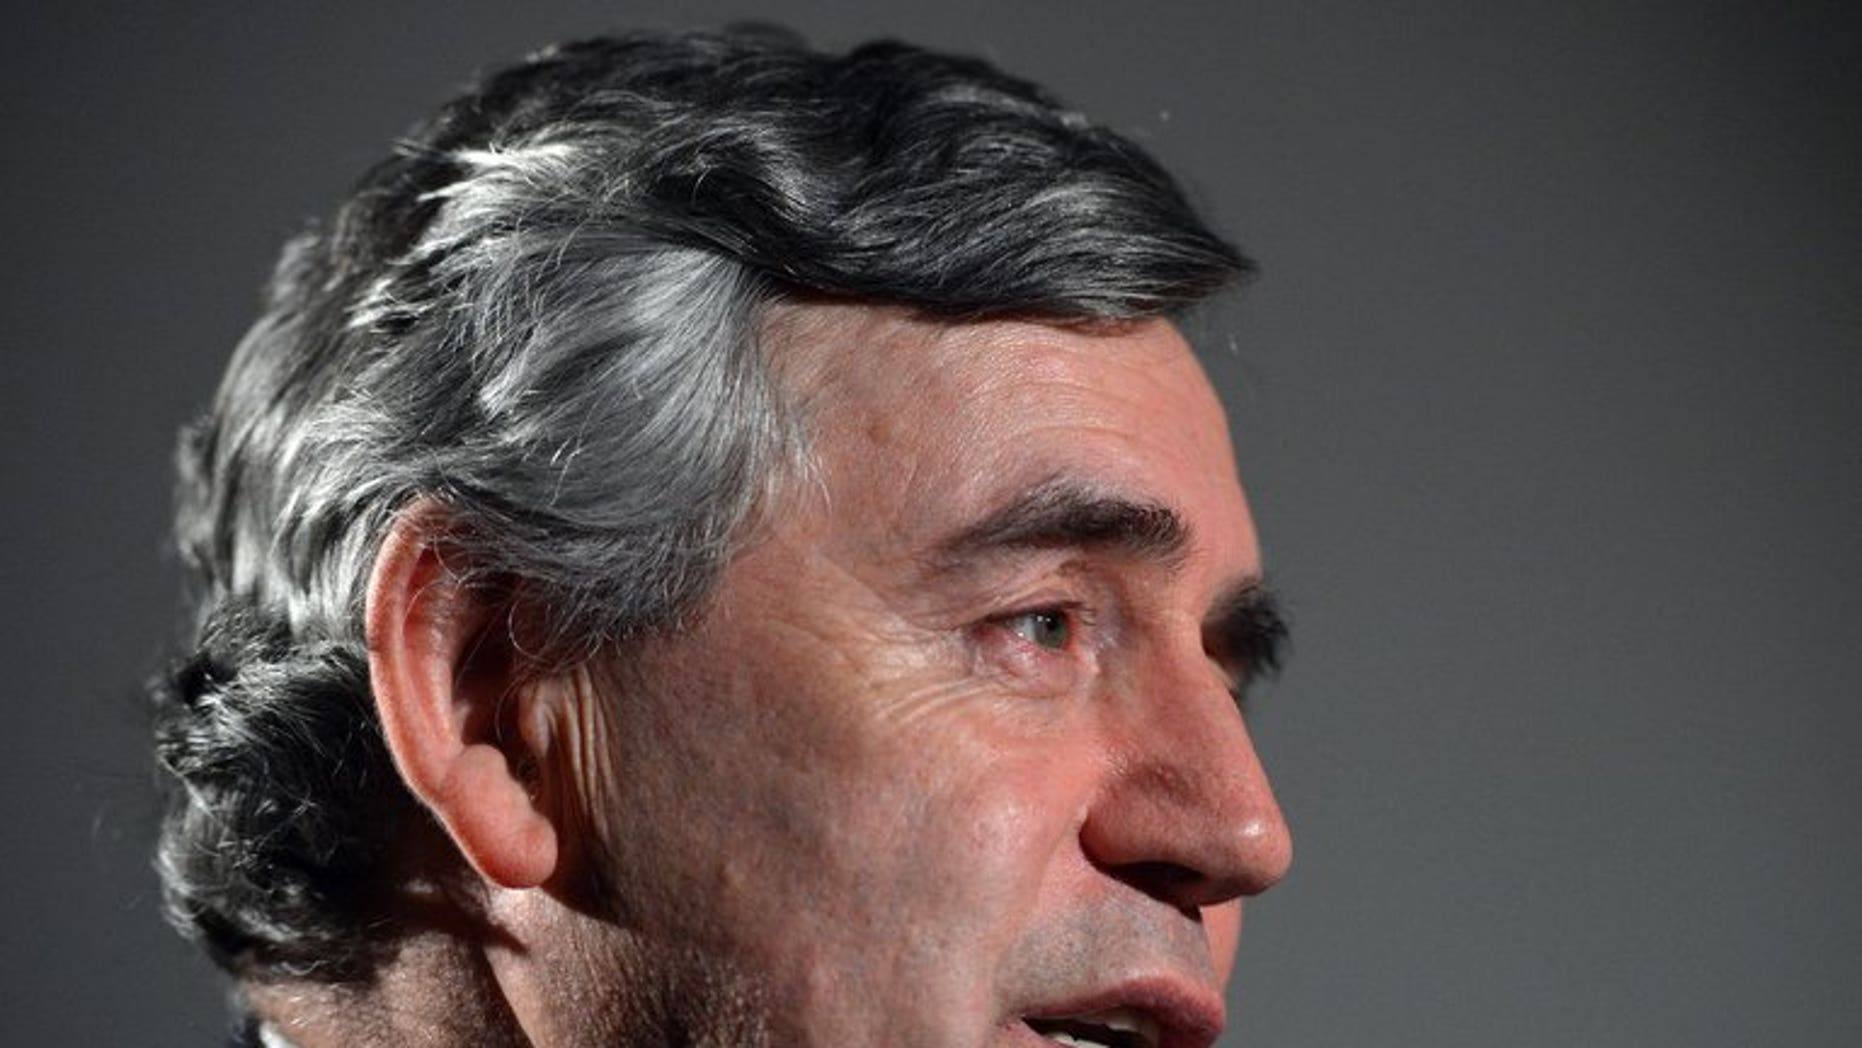 A former Downing Street aide released a trove of emails documenting the bitter power struggle between Tony Blair and Gordon Brown, pictured last year, during their time in government